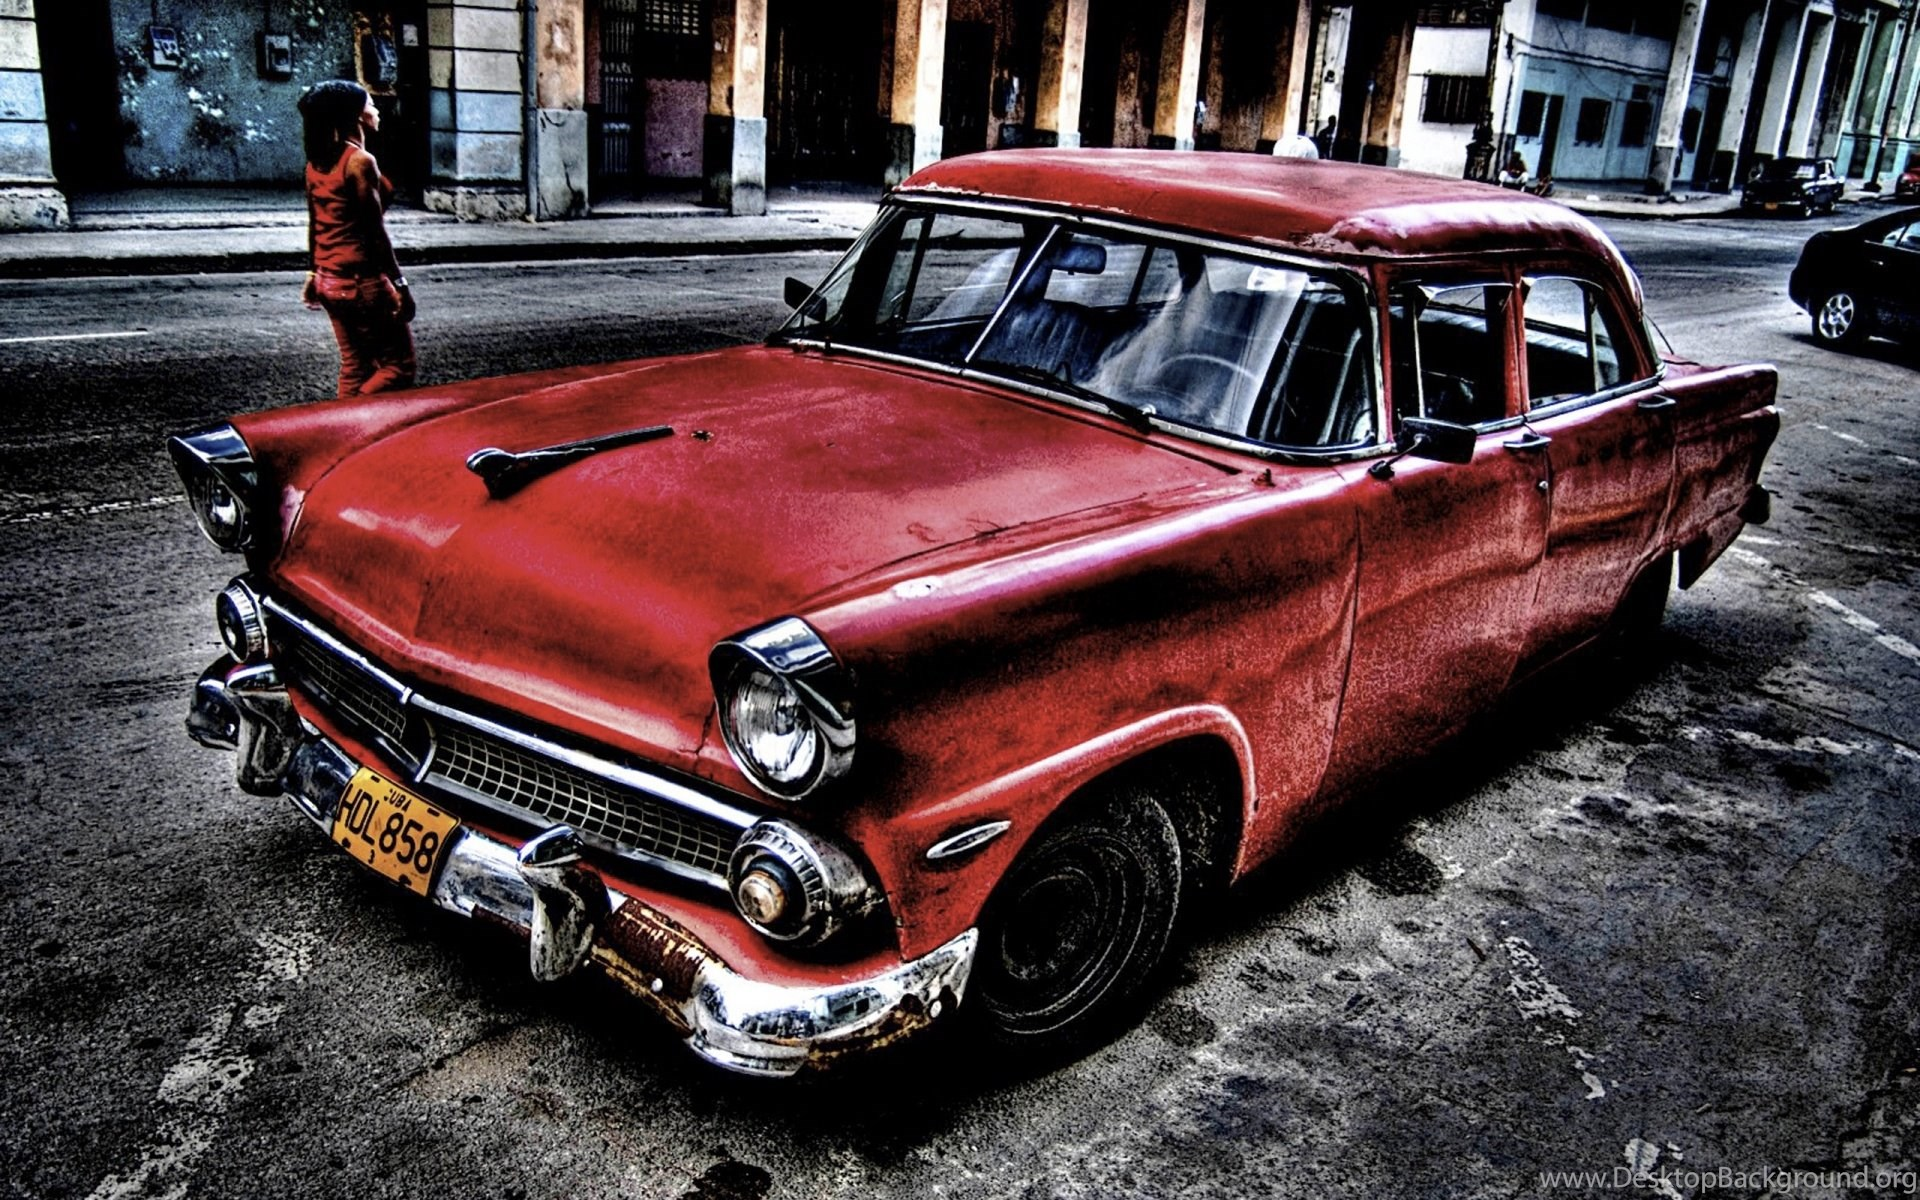 Old Classic Car Wallpapers Free Hd 5531 Hd Wallpapers Site Desktop